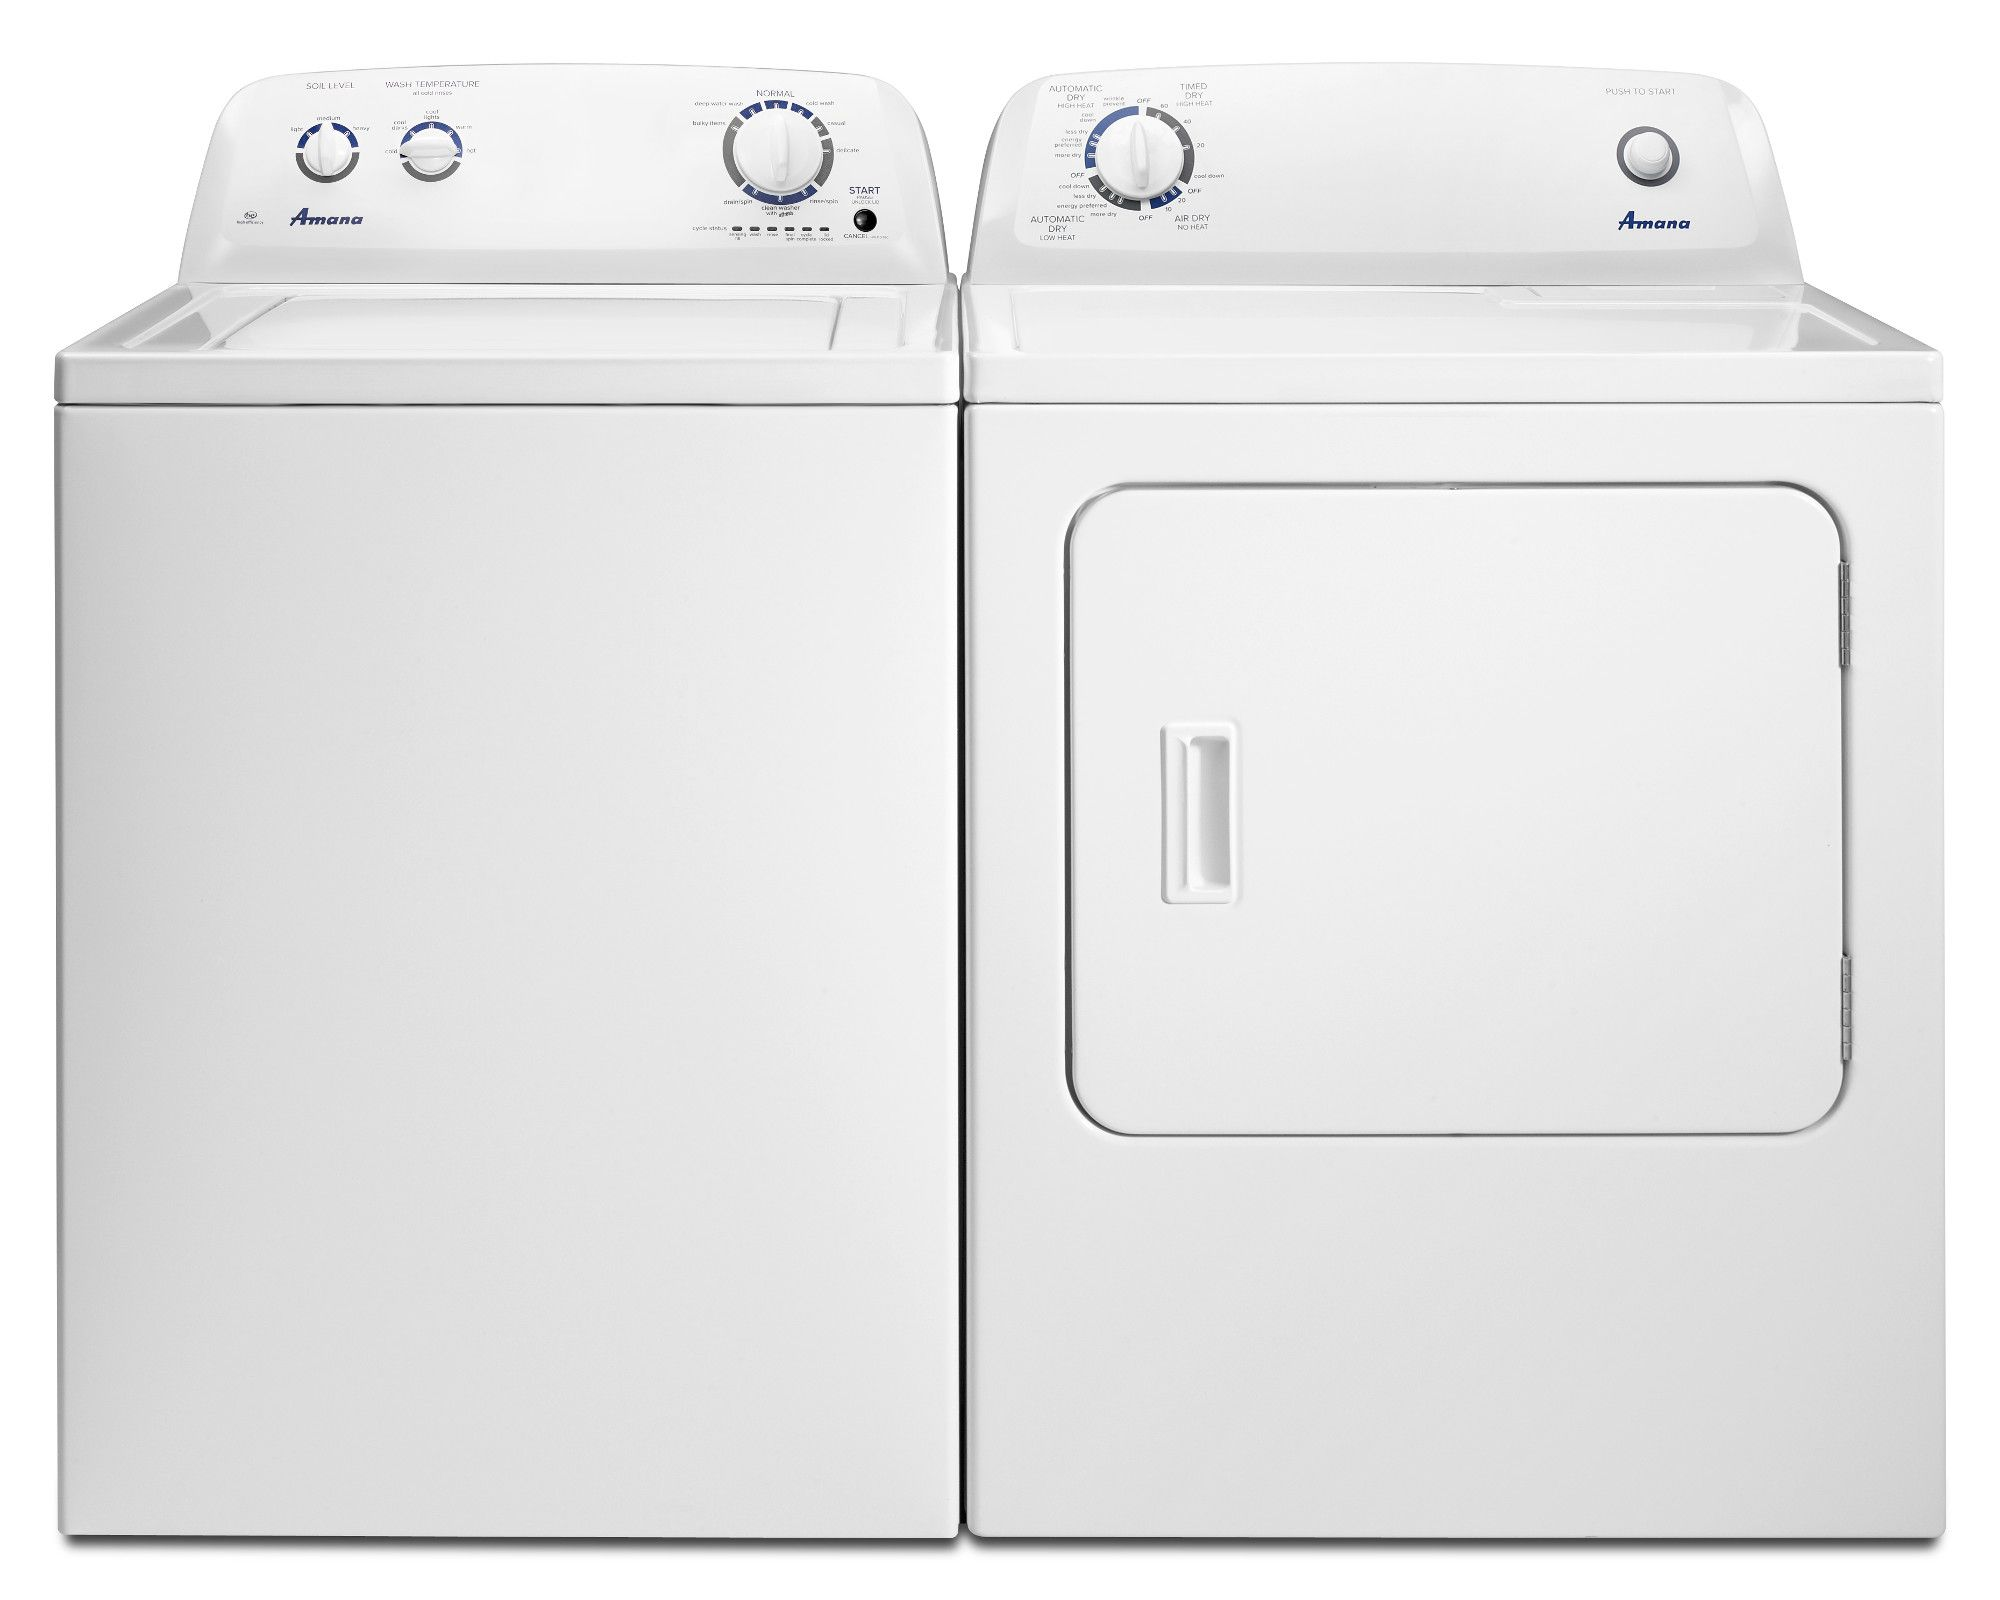 Best Washer Dryer 2020.The 9 Best Washer Dryer Sets Of 2019